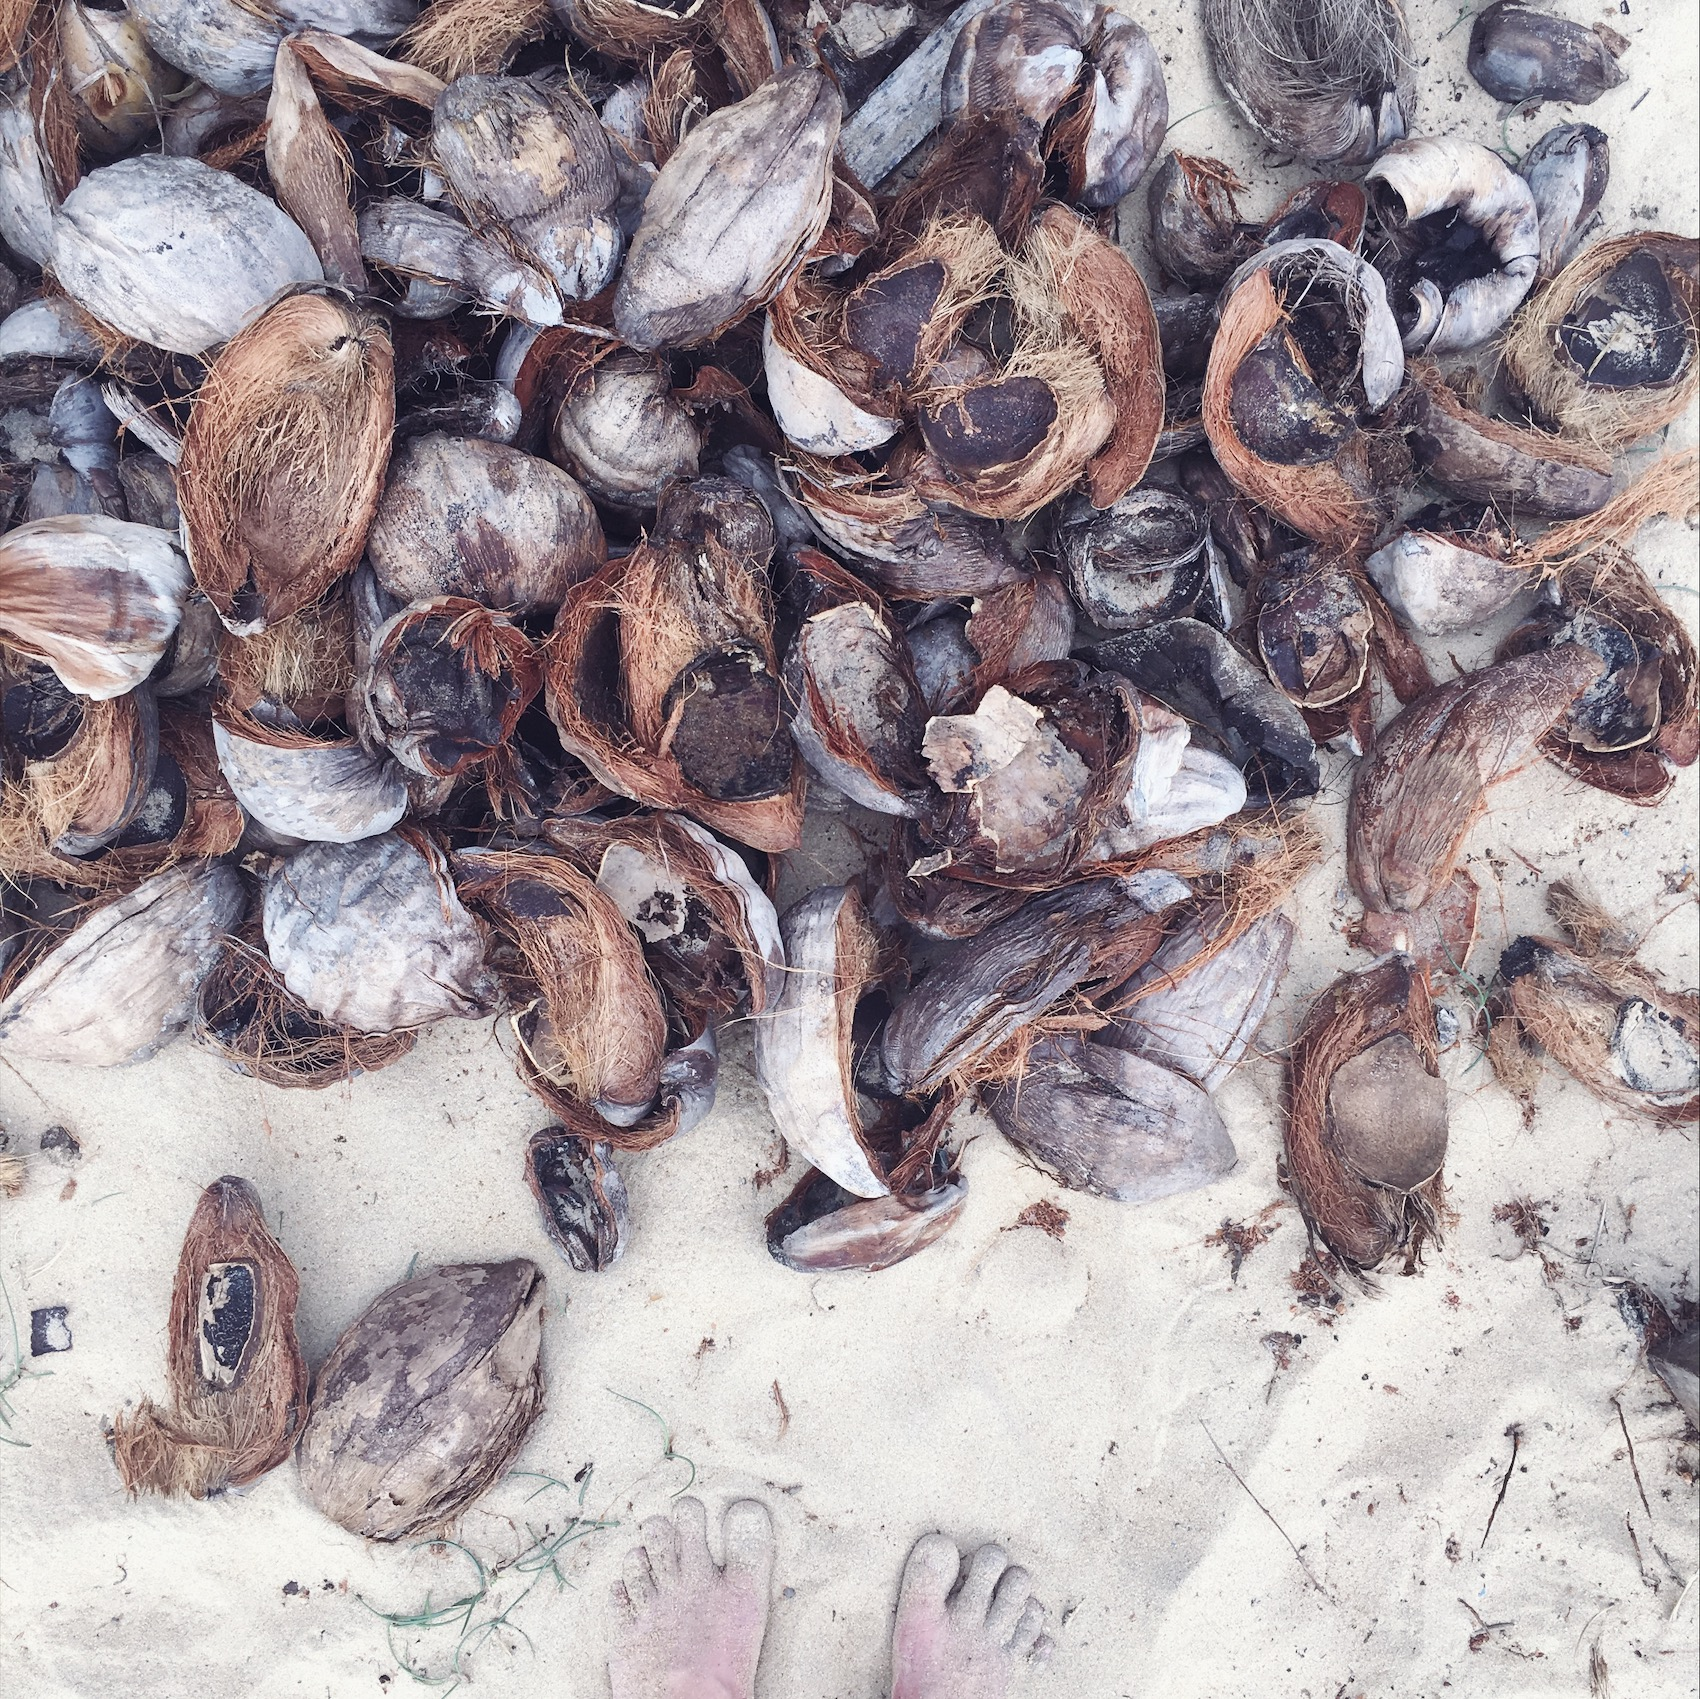 Coconut husks in white sand